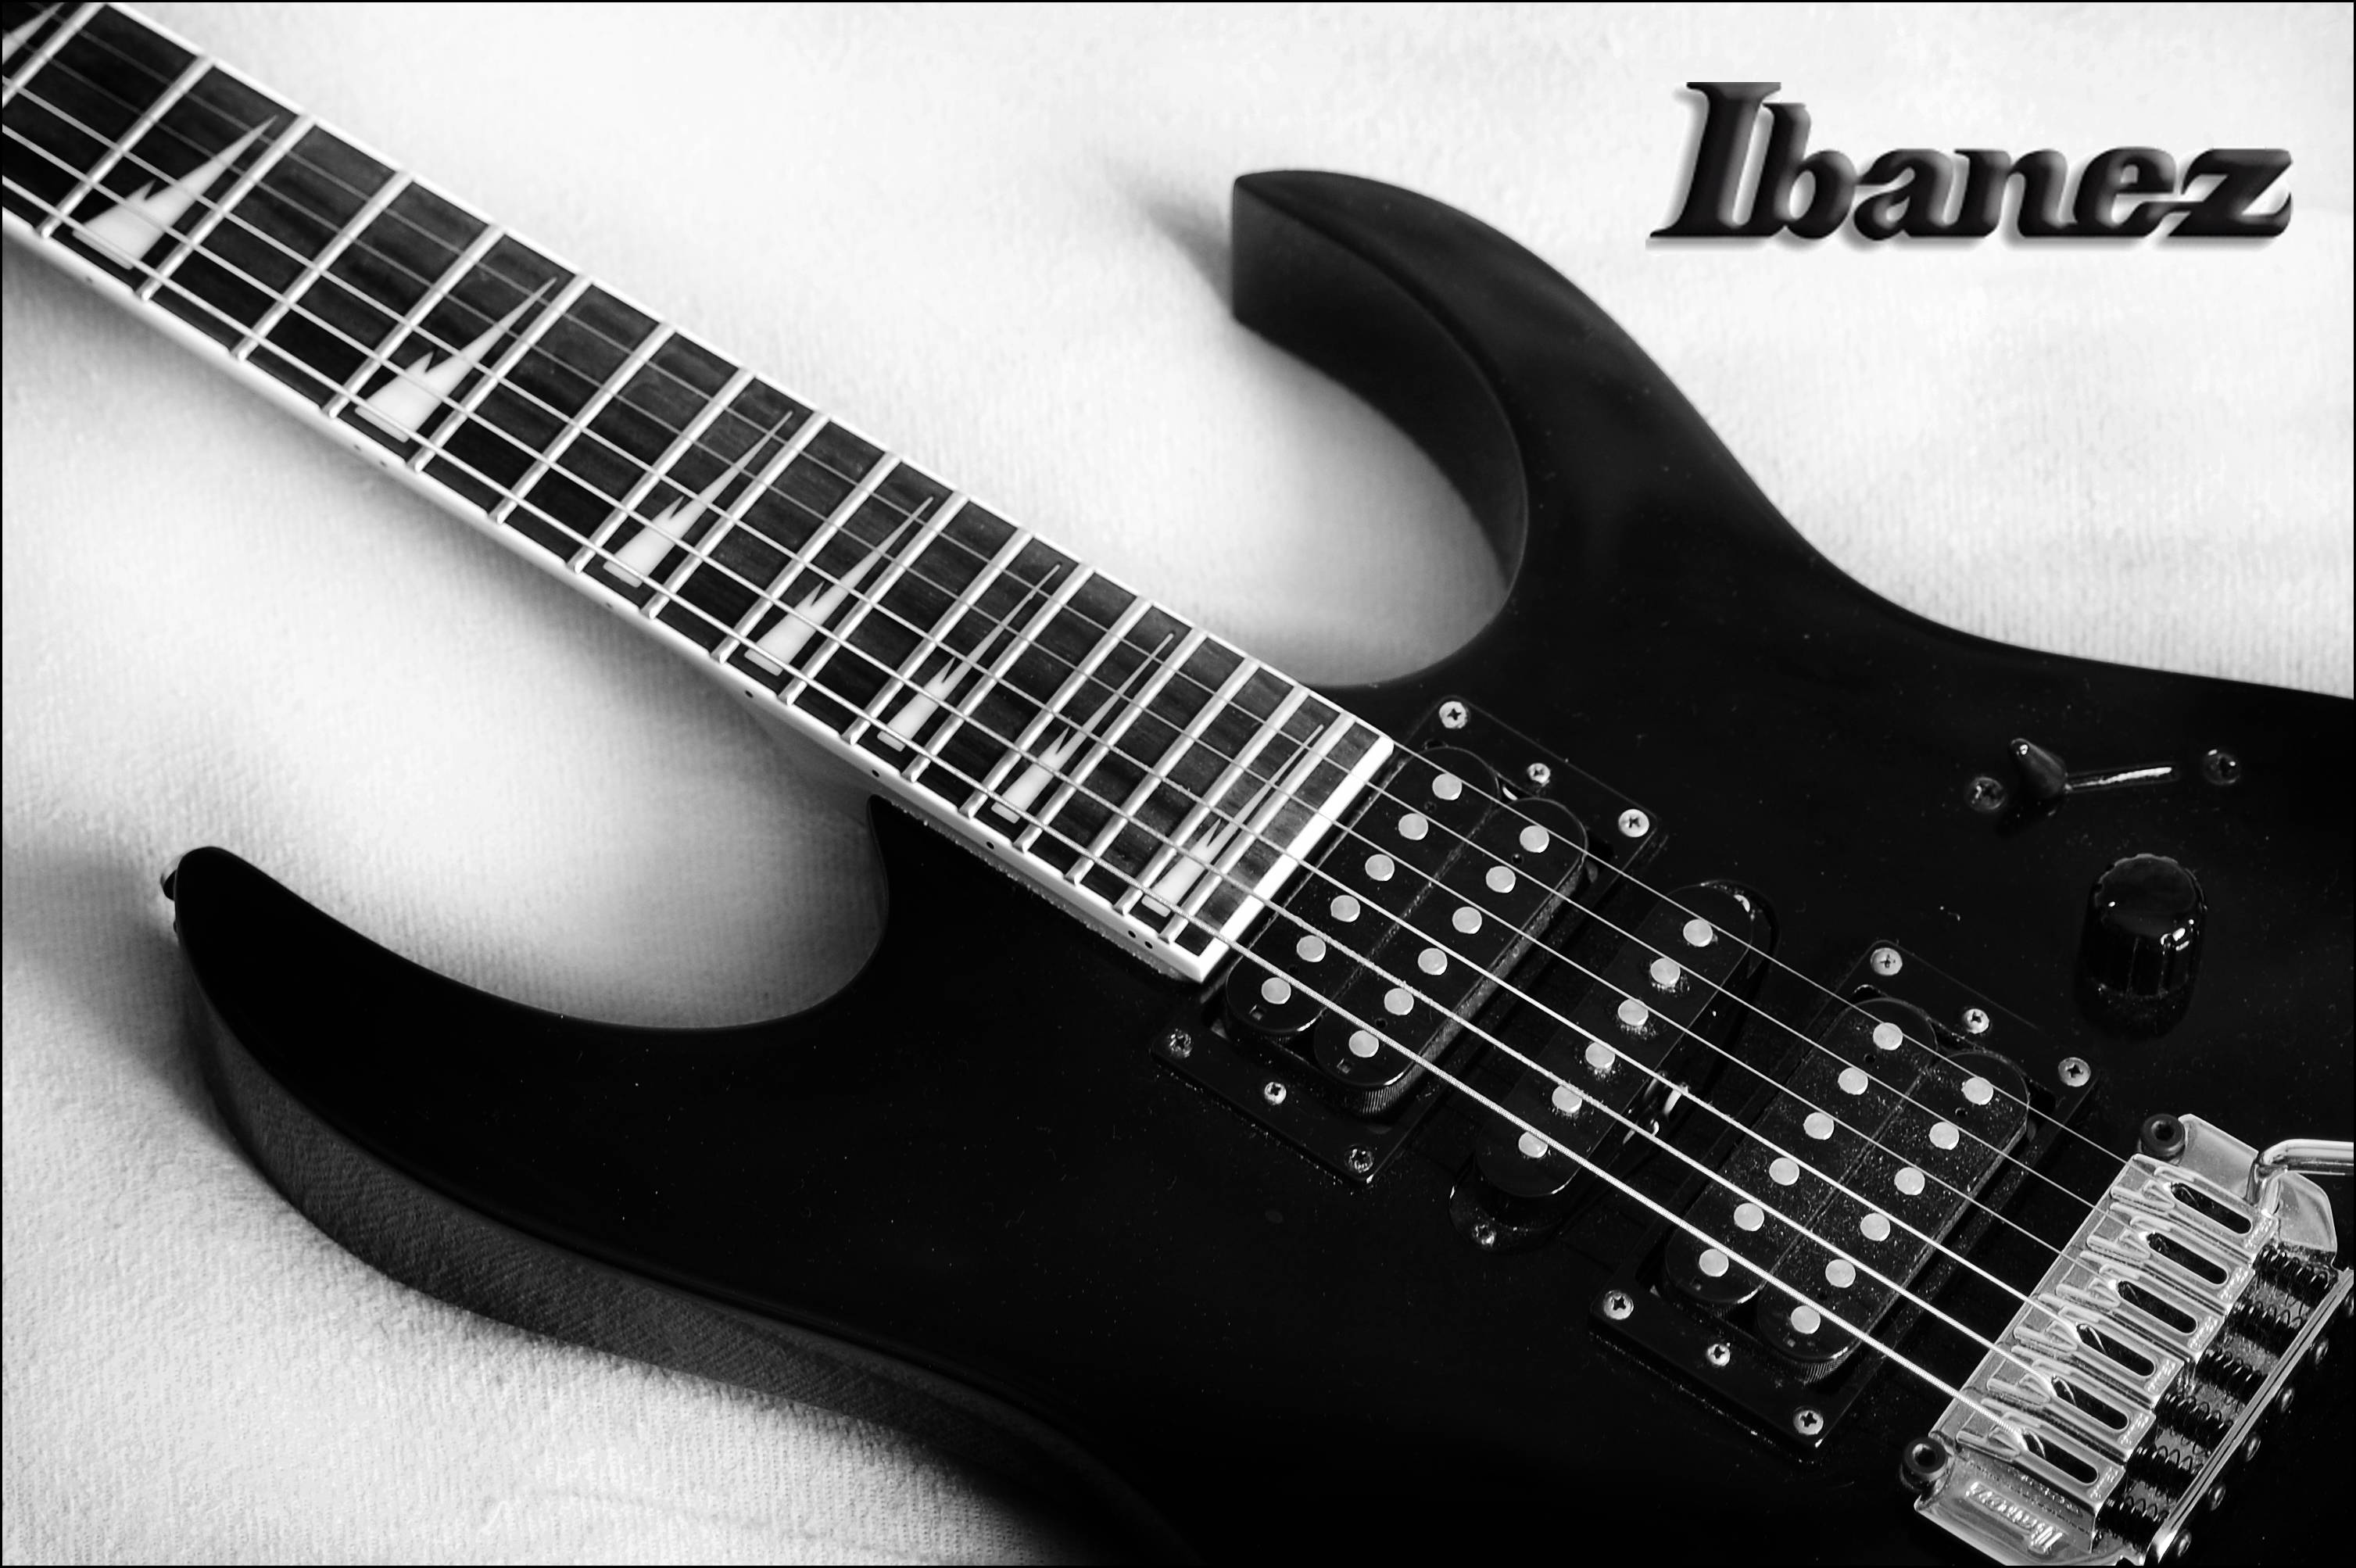 Ibanez Guitar Wallpaper